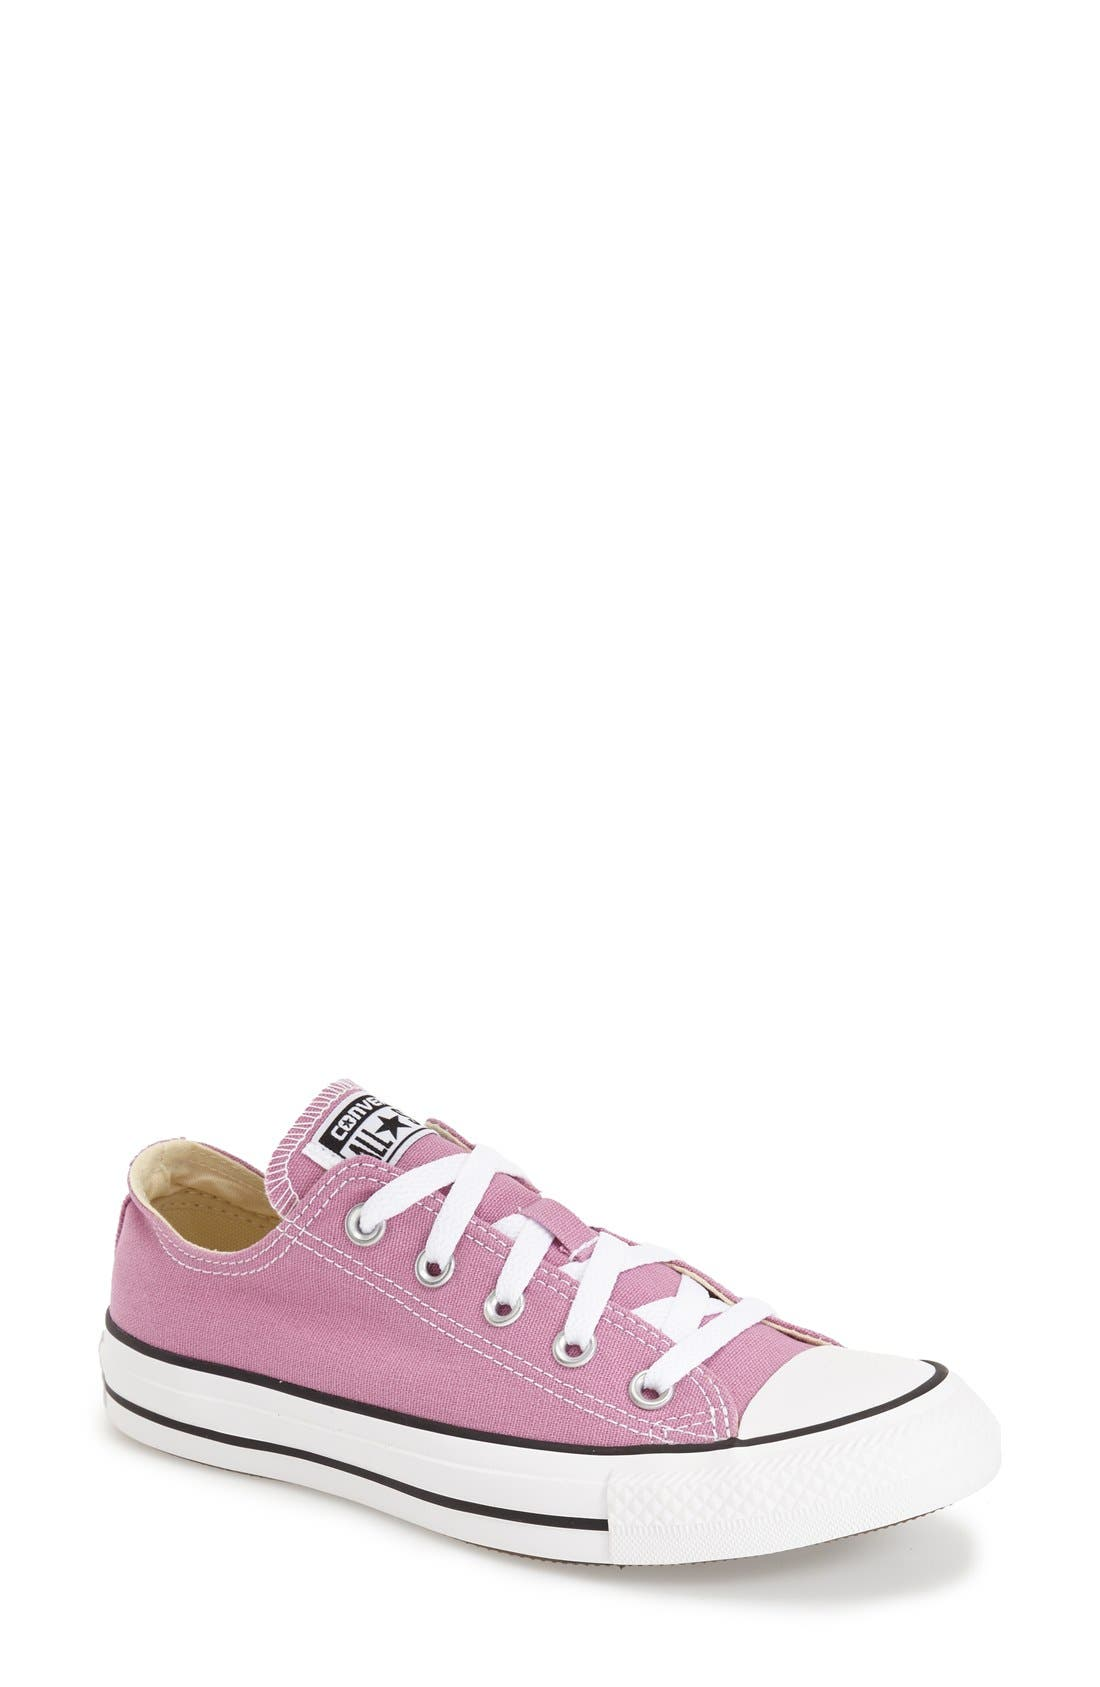 Alternate Image 1 Selected - Converse Chuck Taylor® All Star® 'Ox' Low Top Sneaker (Women)